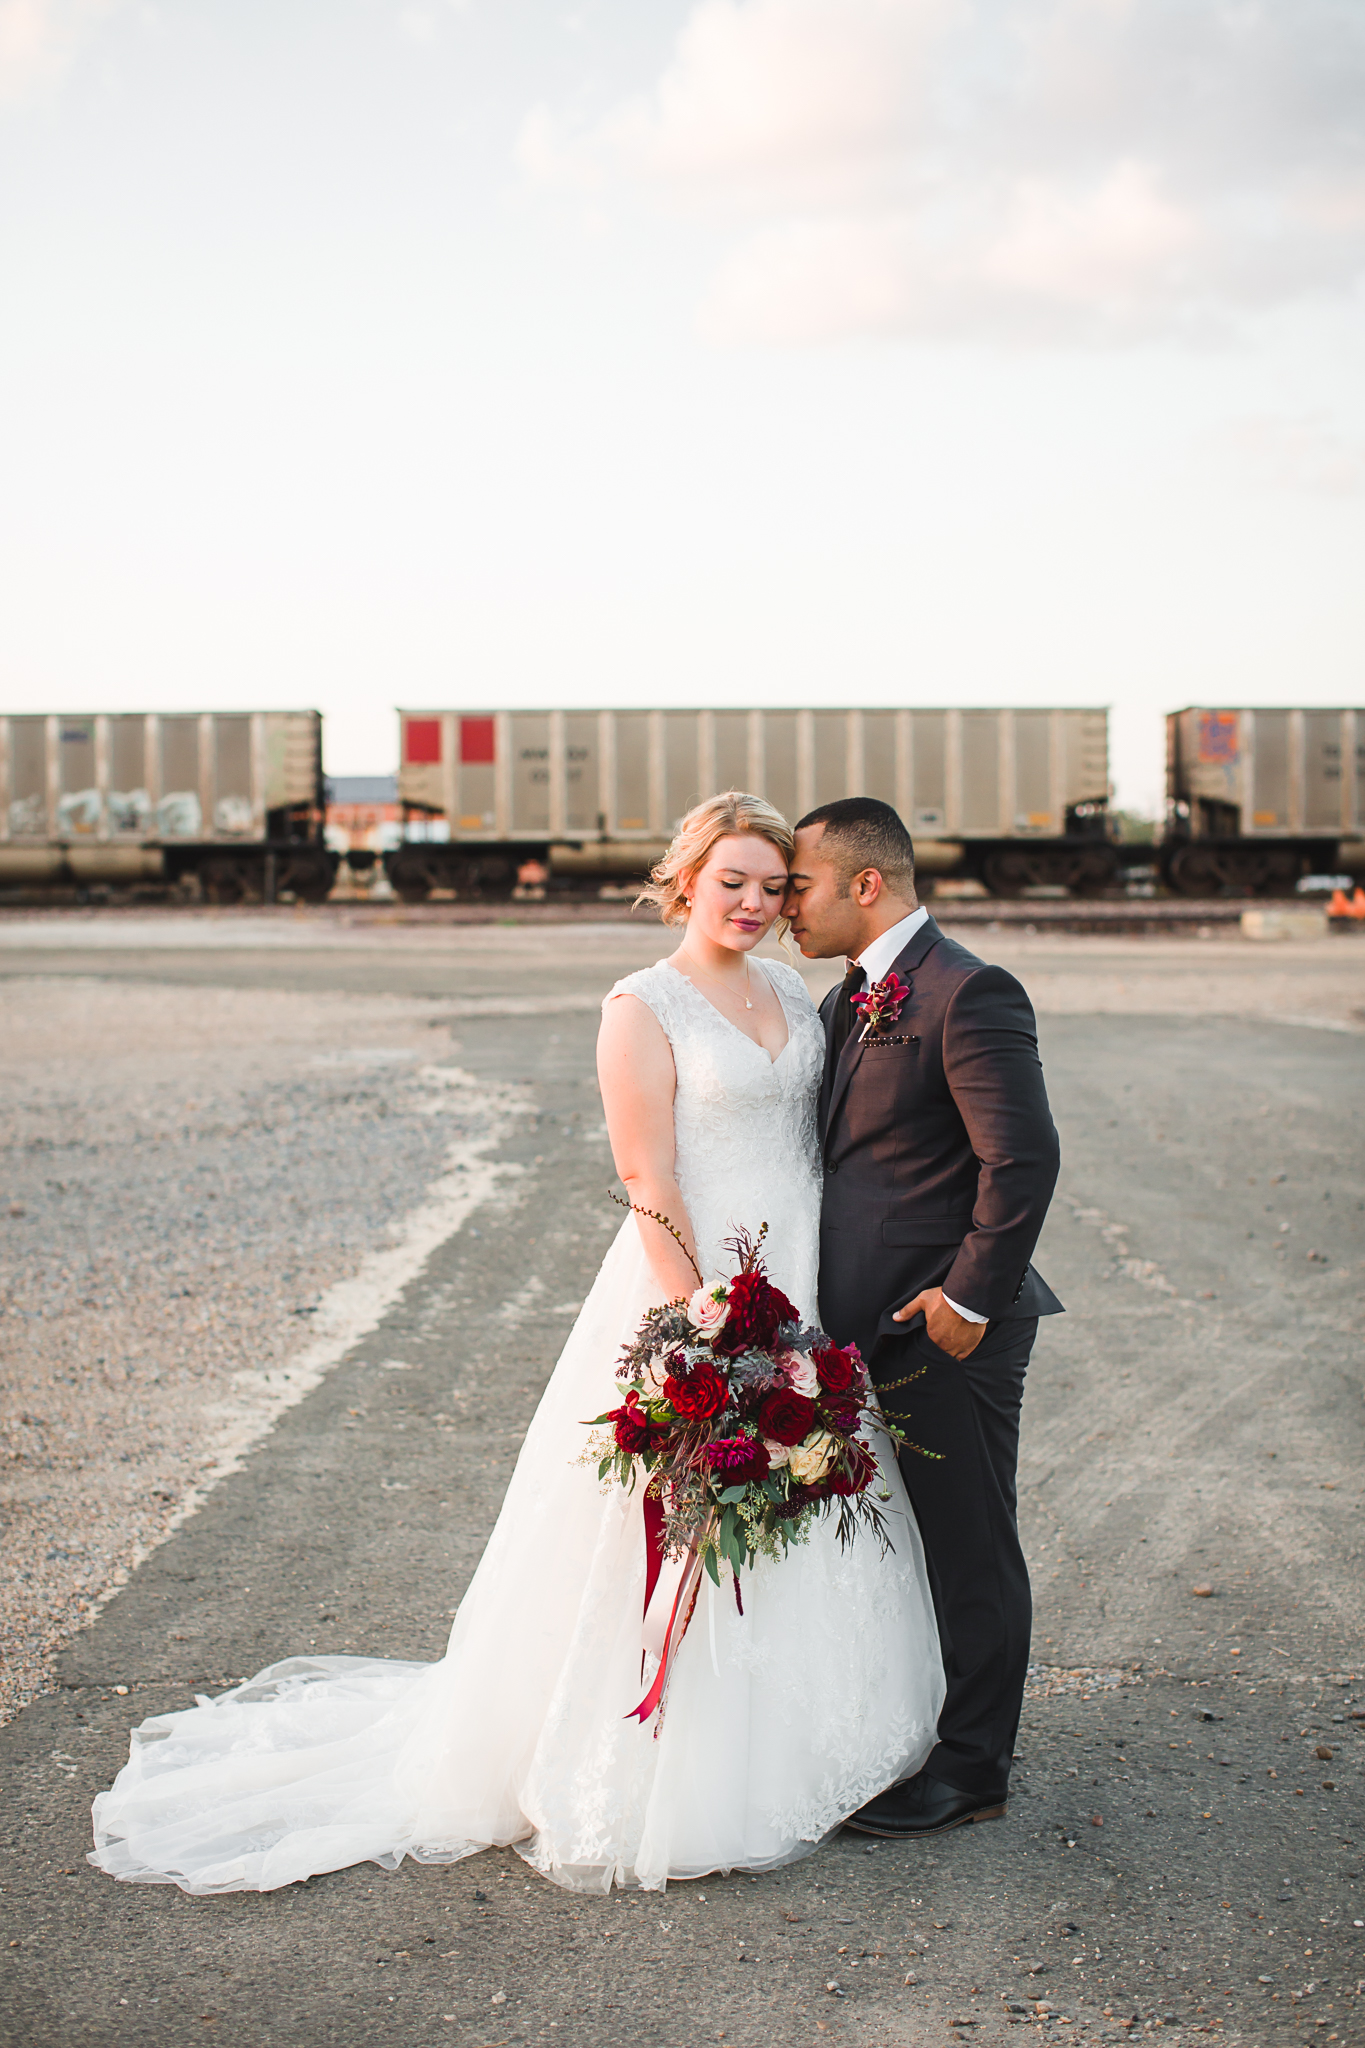 I loved the unique-ness of this wedding day and I have some exciting news about it that I can't share right now!